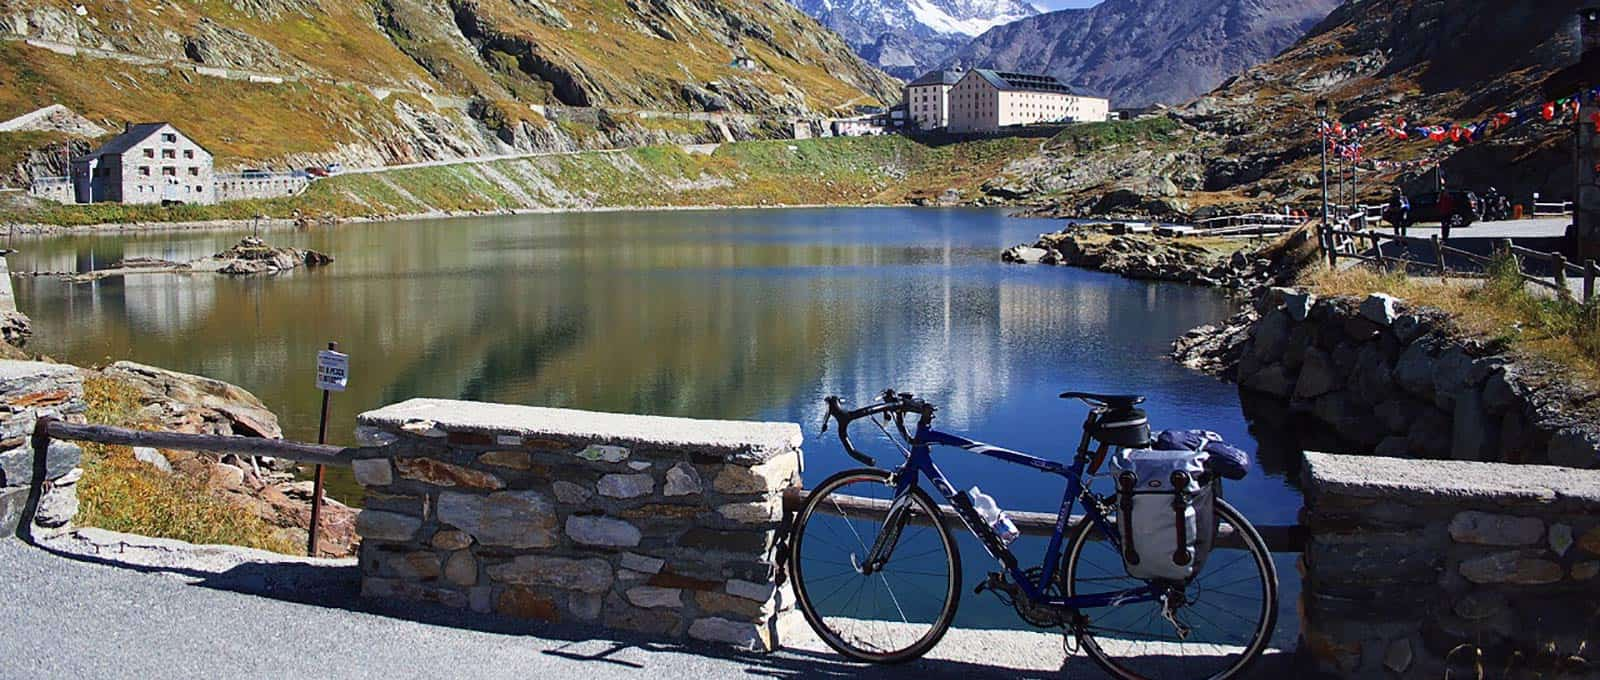 Mountain bike e downhill in valle d 39 aosta aosta spa for Design hotel valle d aosta